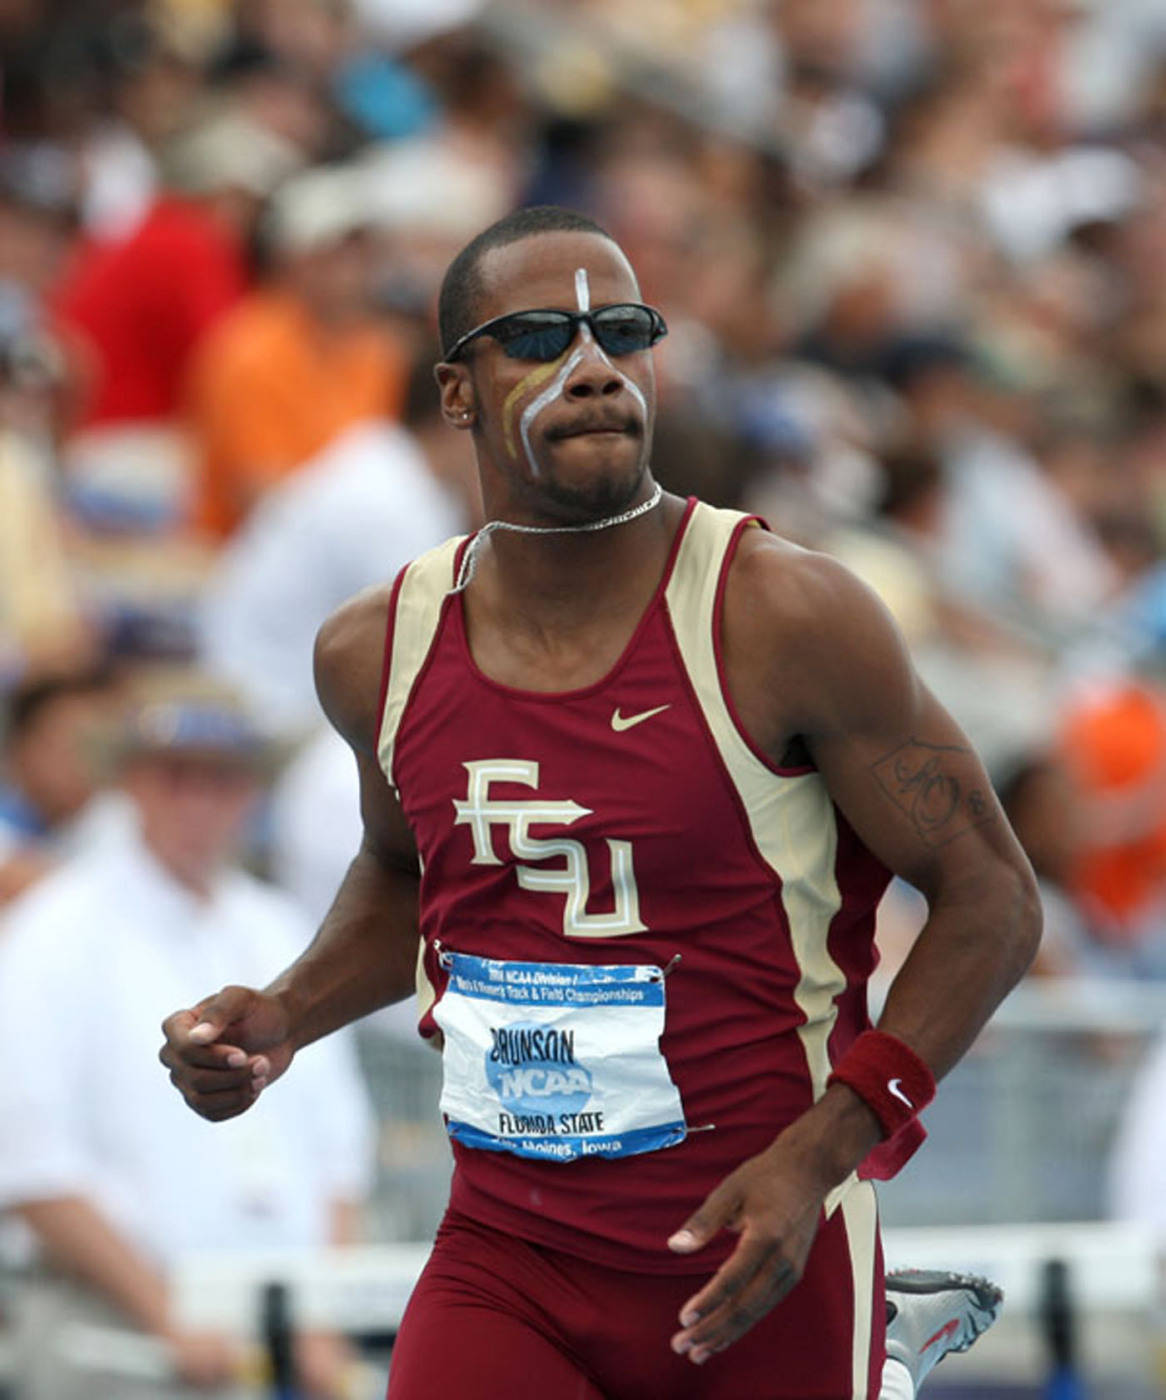 Drew Brunson after running a career-best 13.40 in the 110m hurdles.